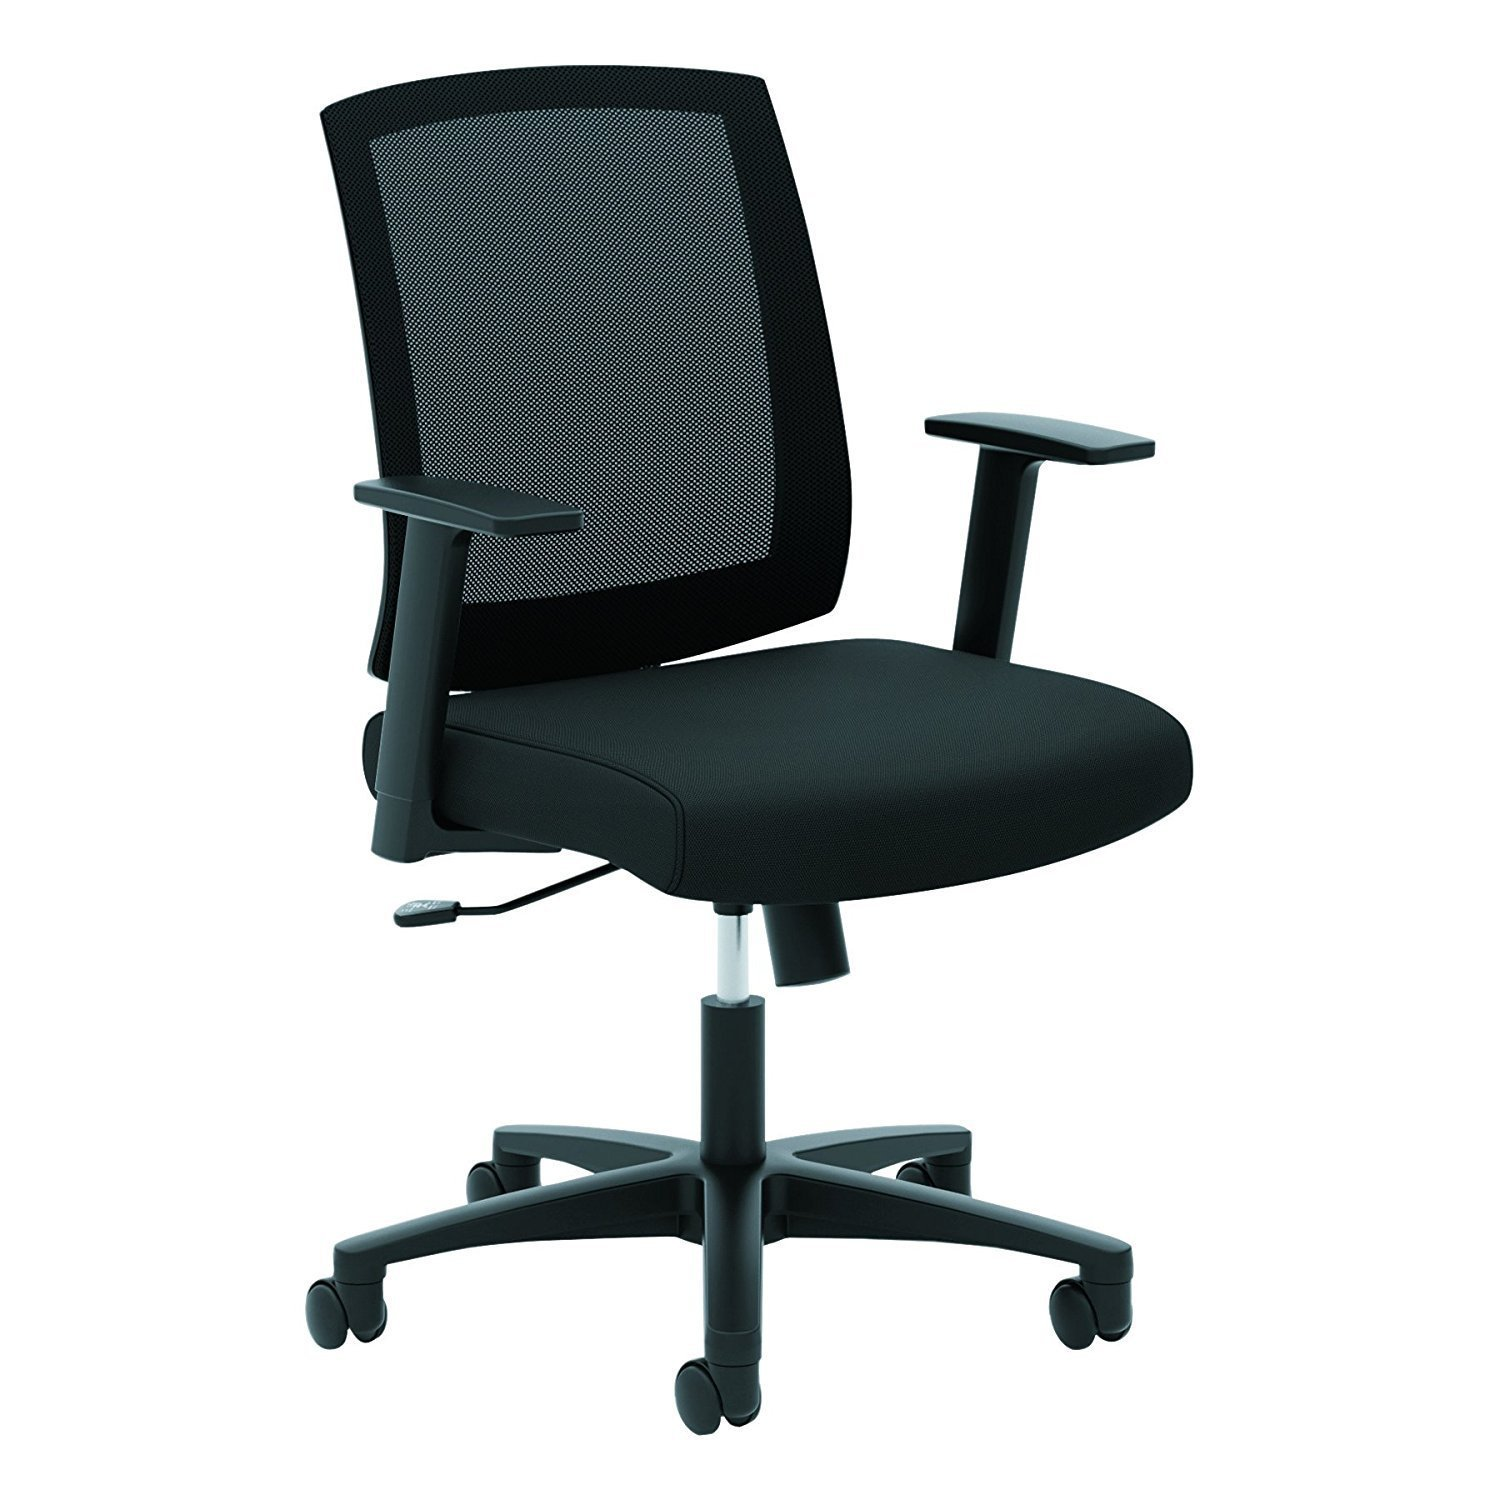 office chair guide swing home bargains freedom task furniture design